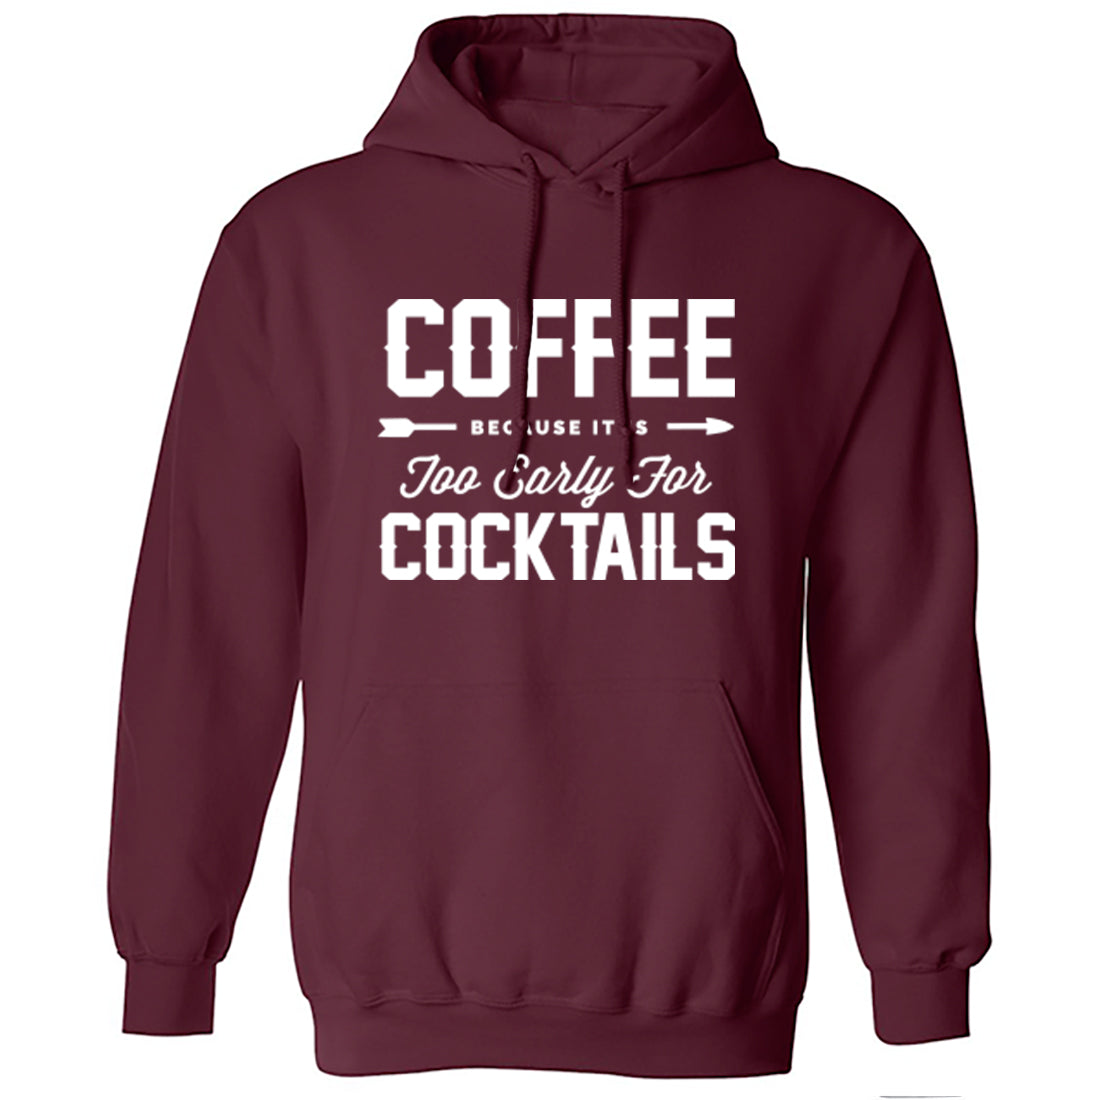 Coffee Because It Is Too Early For Cocktails Unisex Hoodie K1763 - Illustrated Identity Ltd.